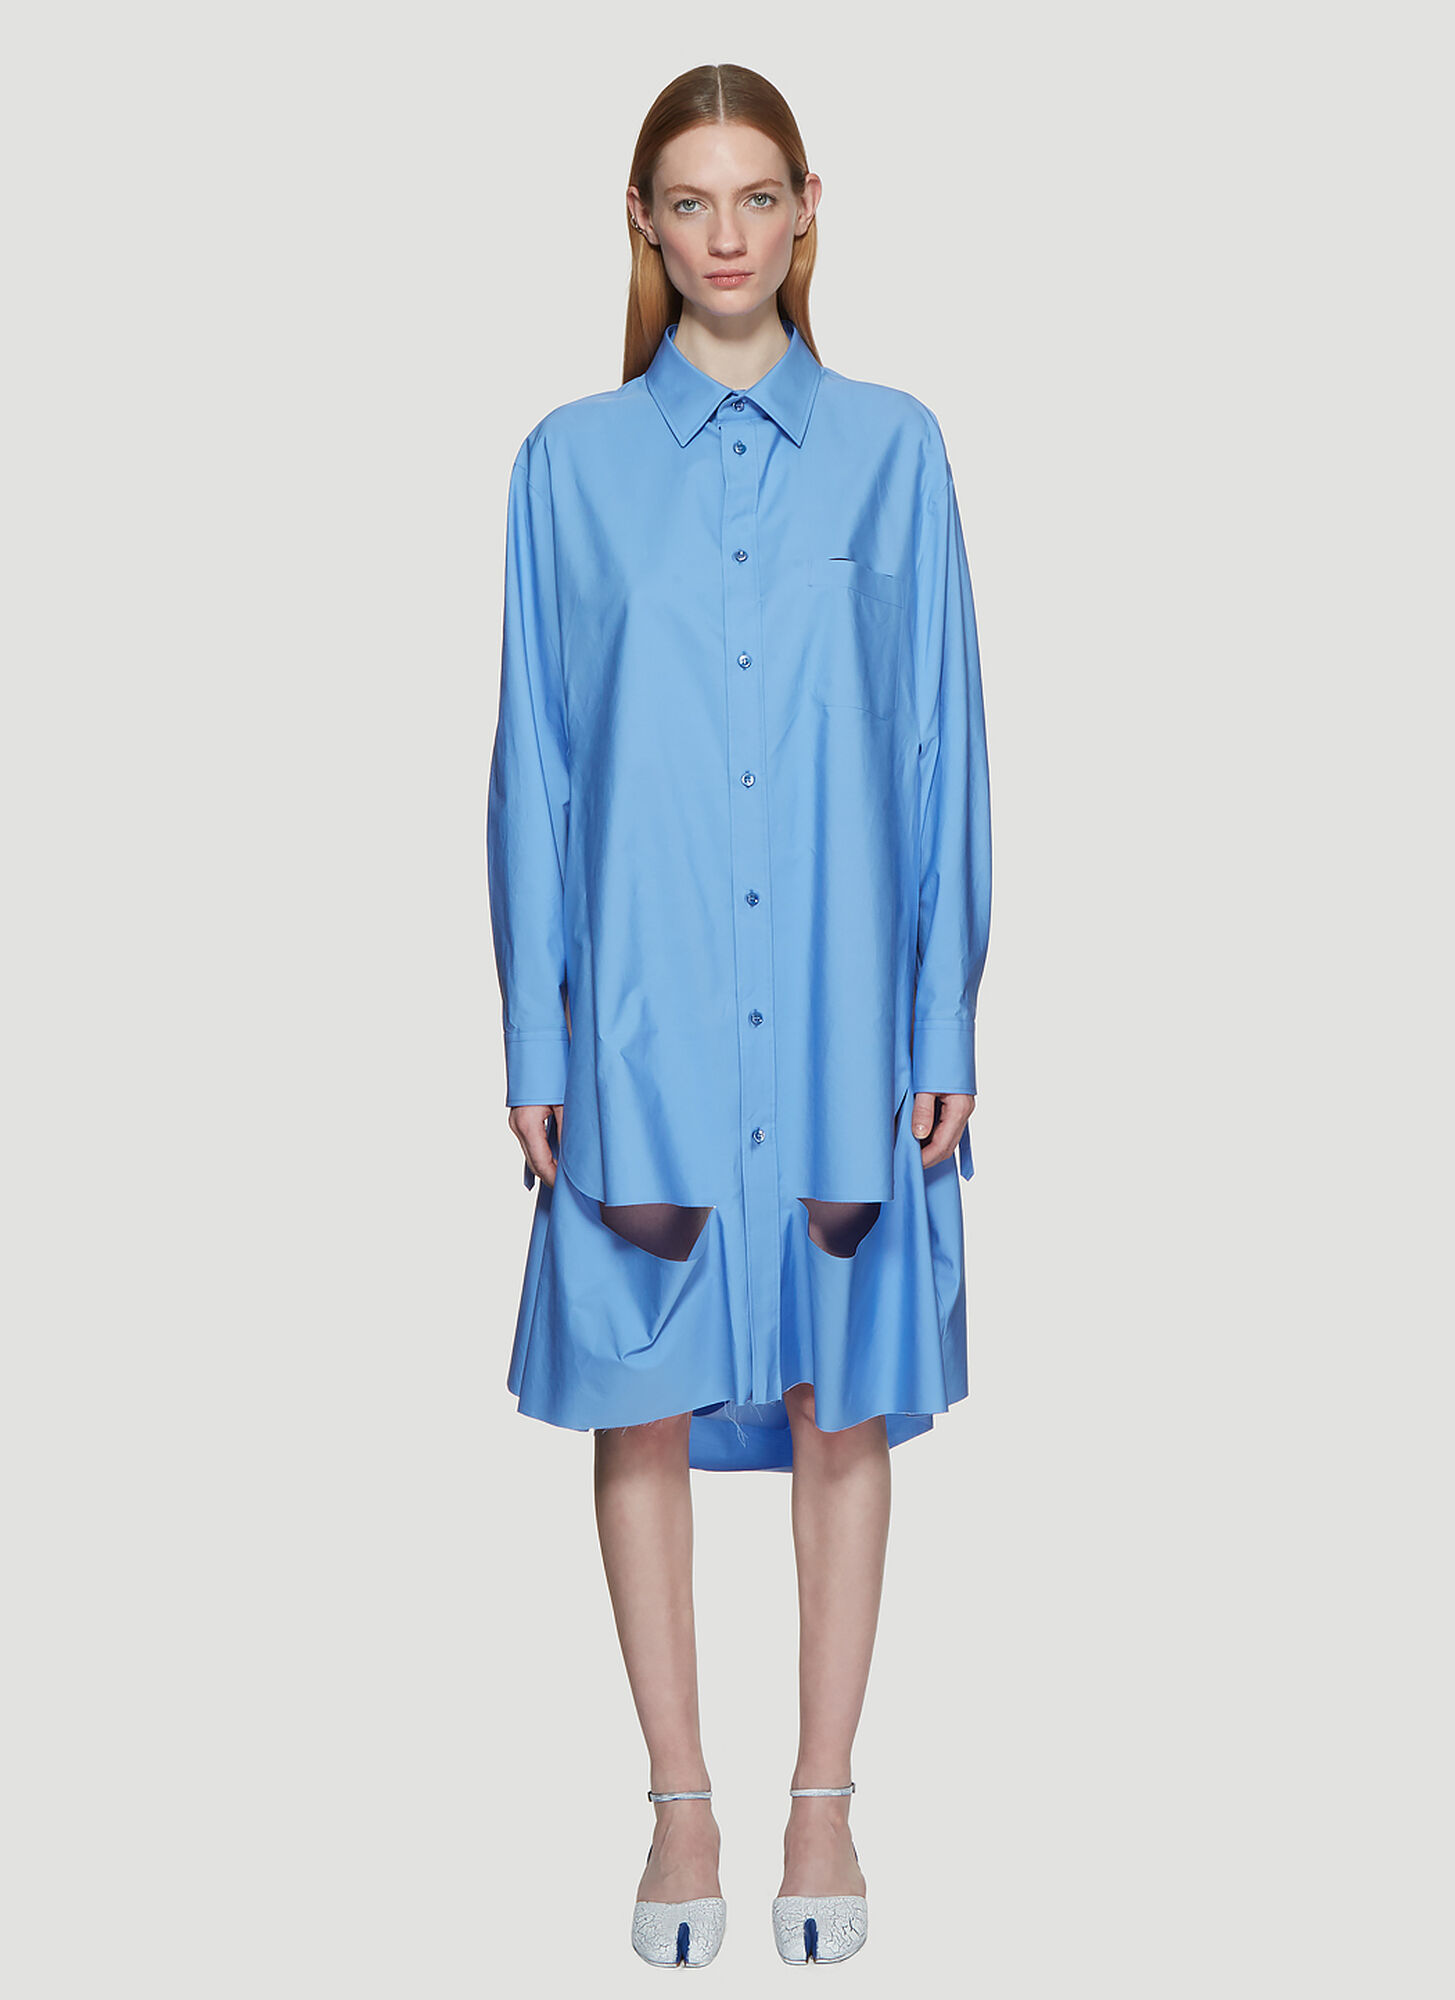 Maison Margiela Oversized Deconstructed Shirt in Blue